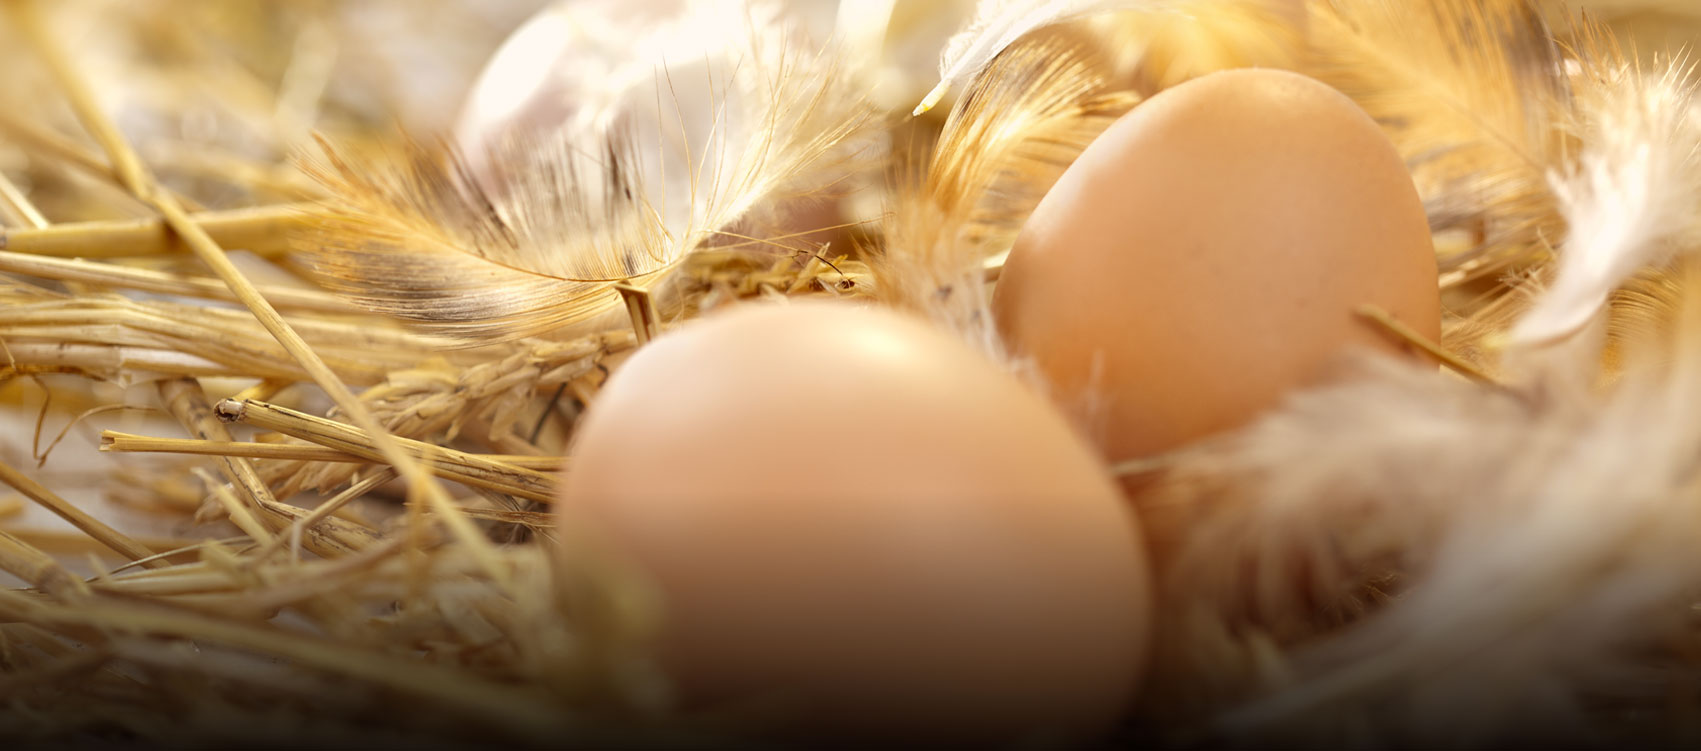 Riverview Eggs Archives Slider